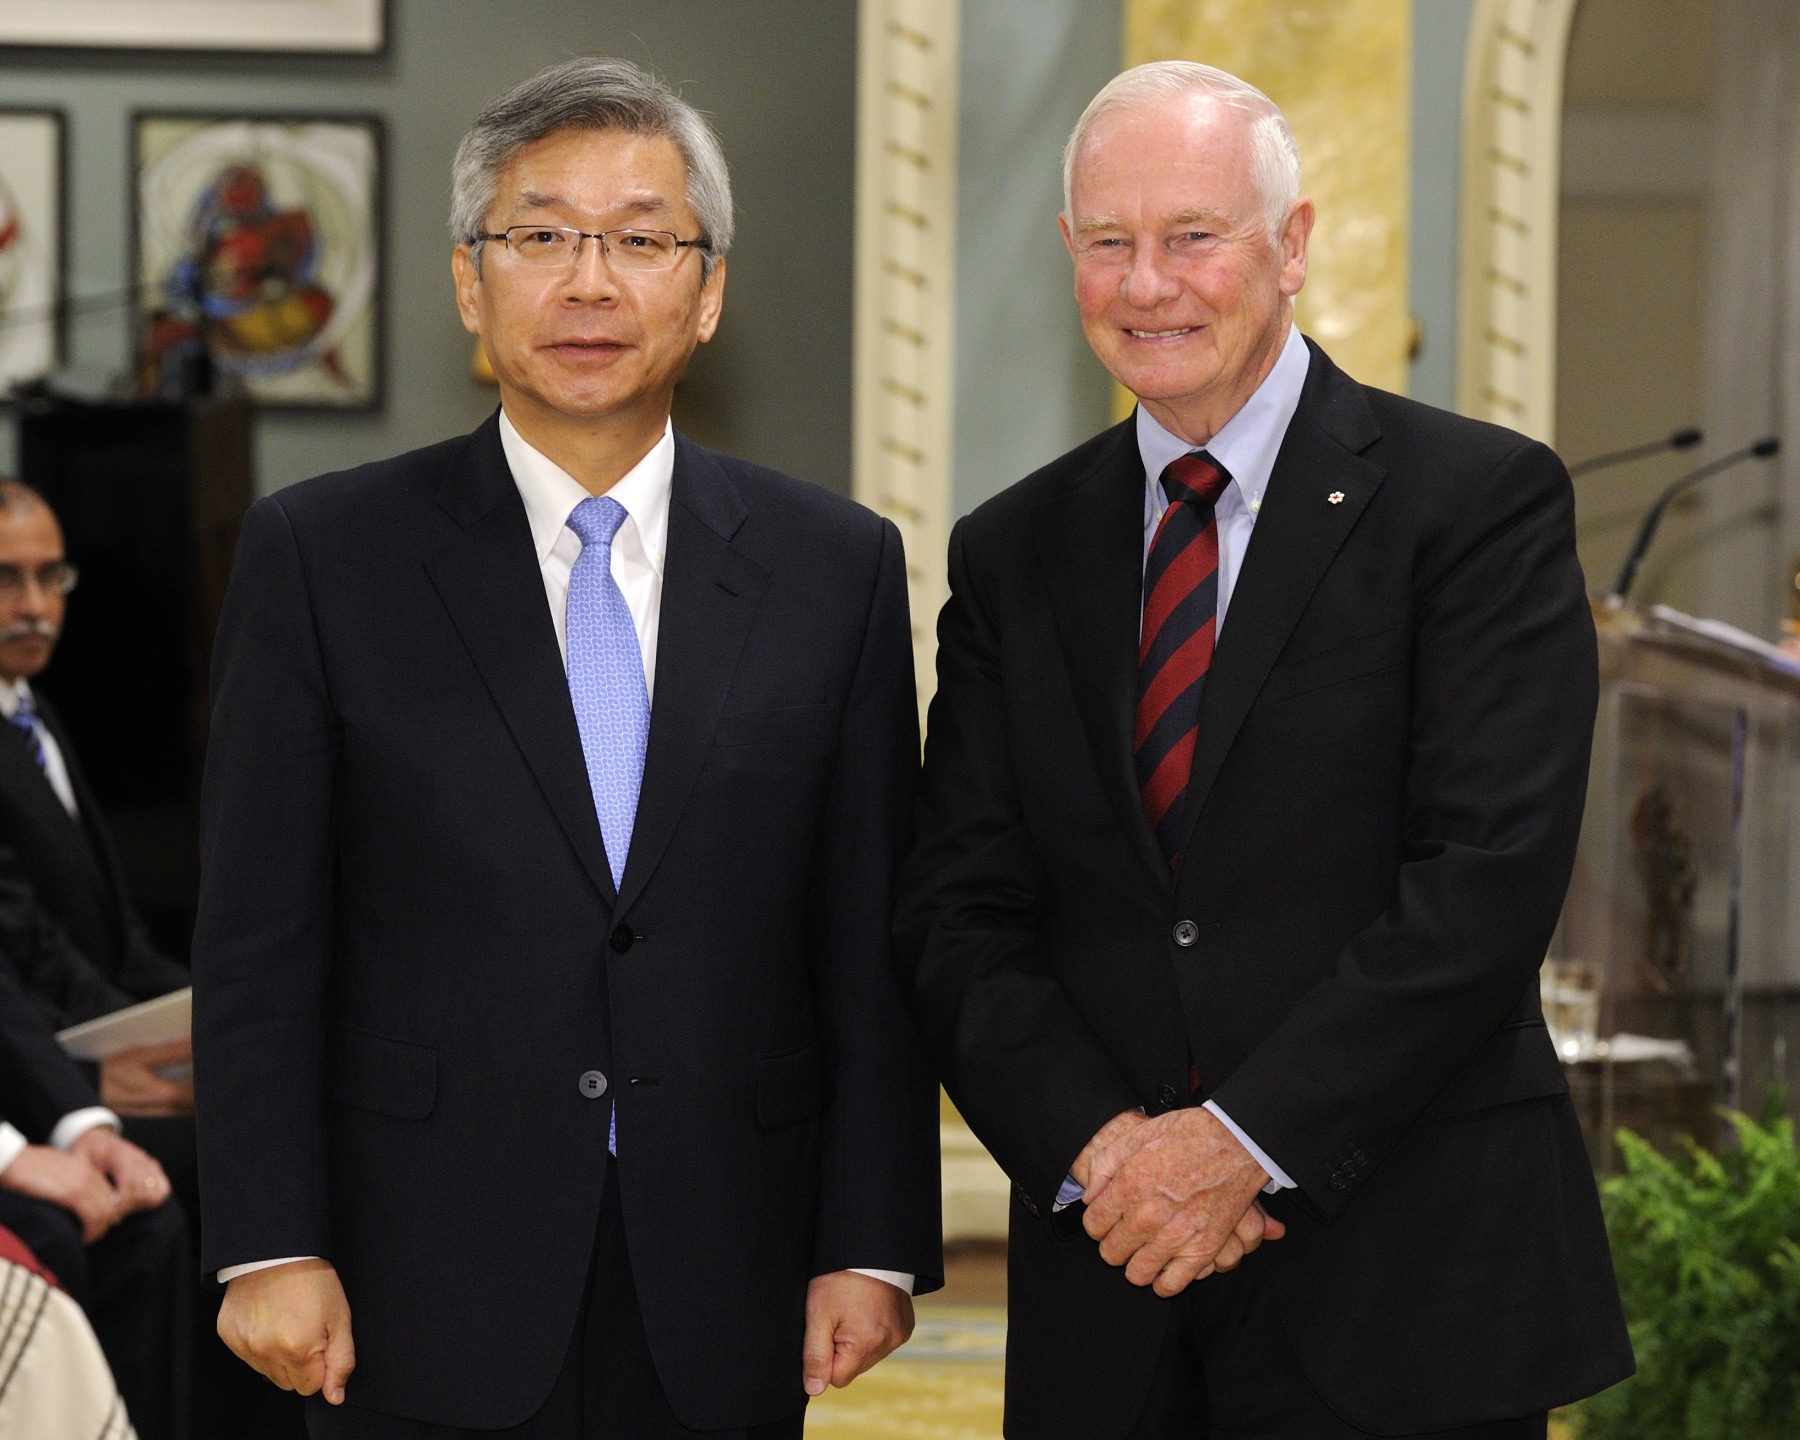 The Governor General received the credentials of His Excellency Cho Hee-yong, Ambassador of the Republic of Korea.